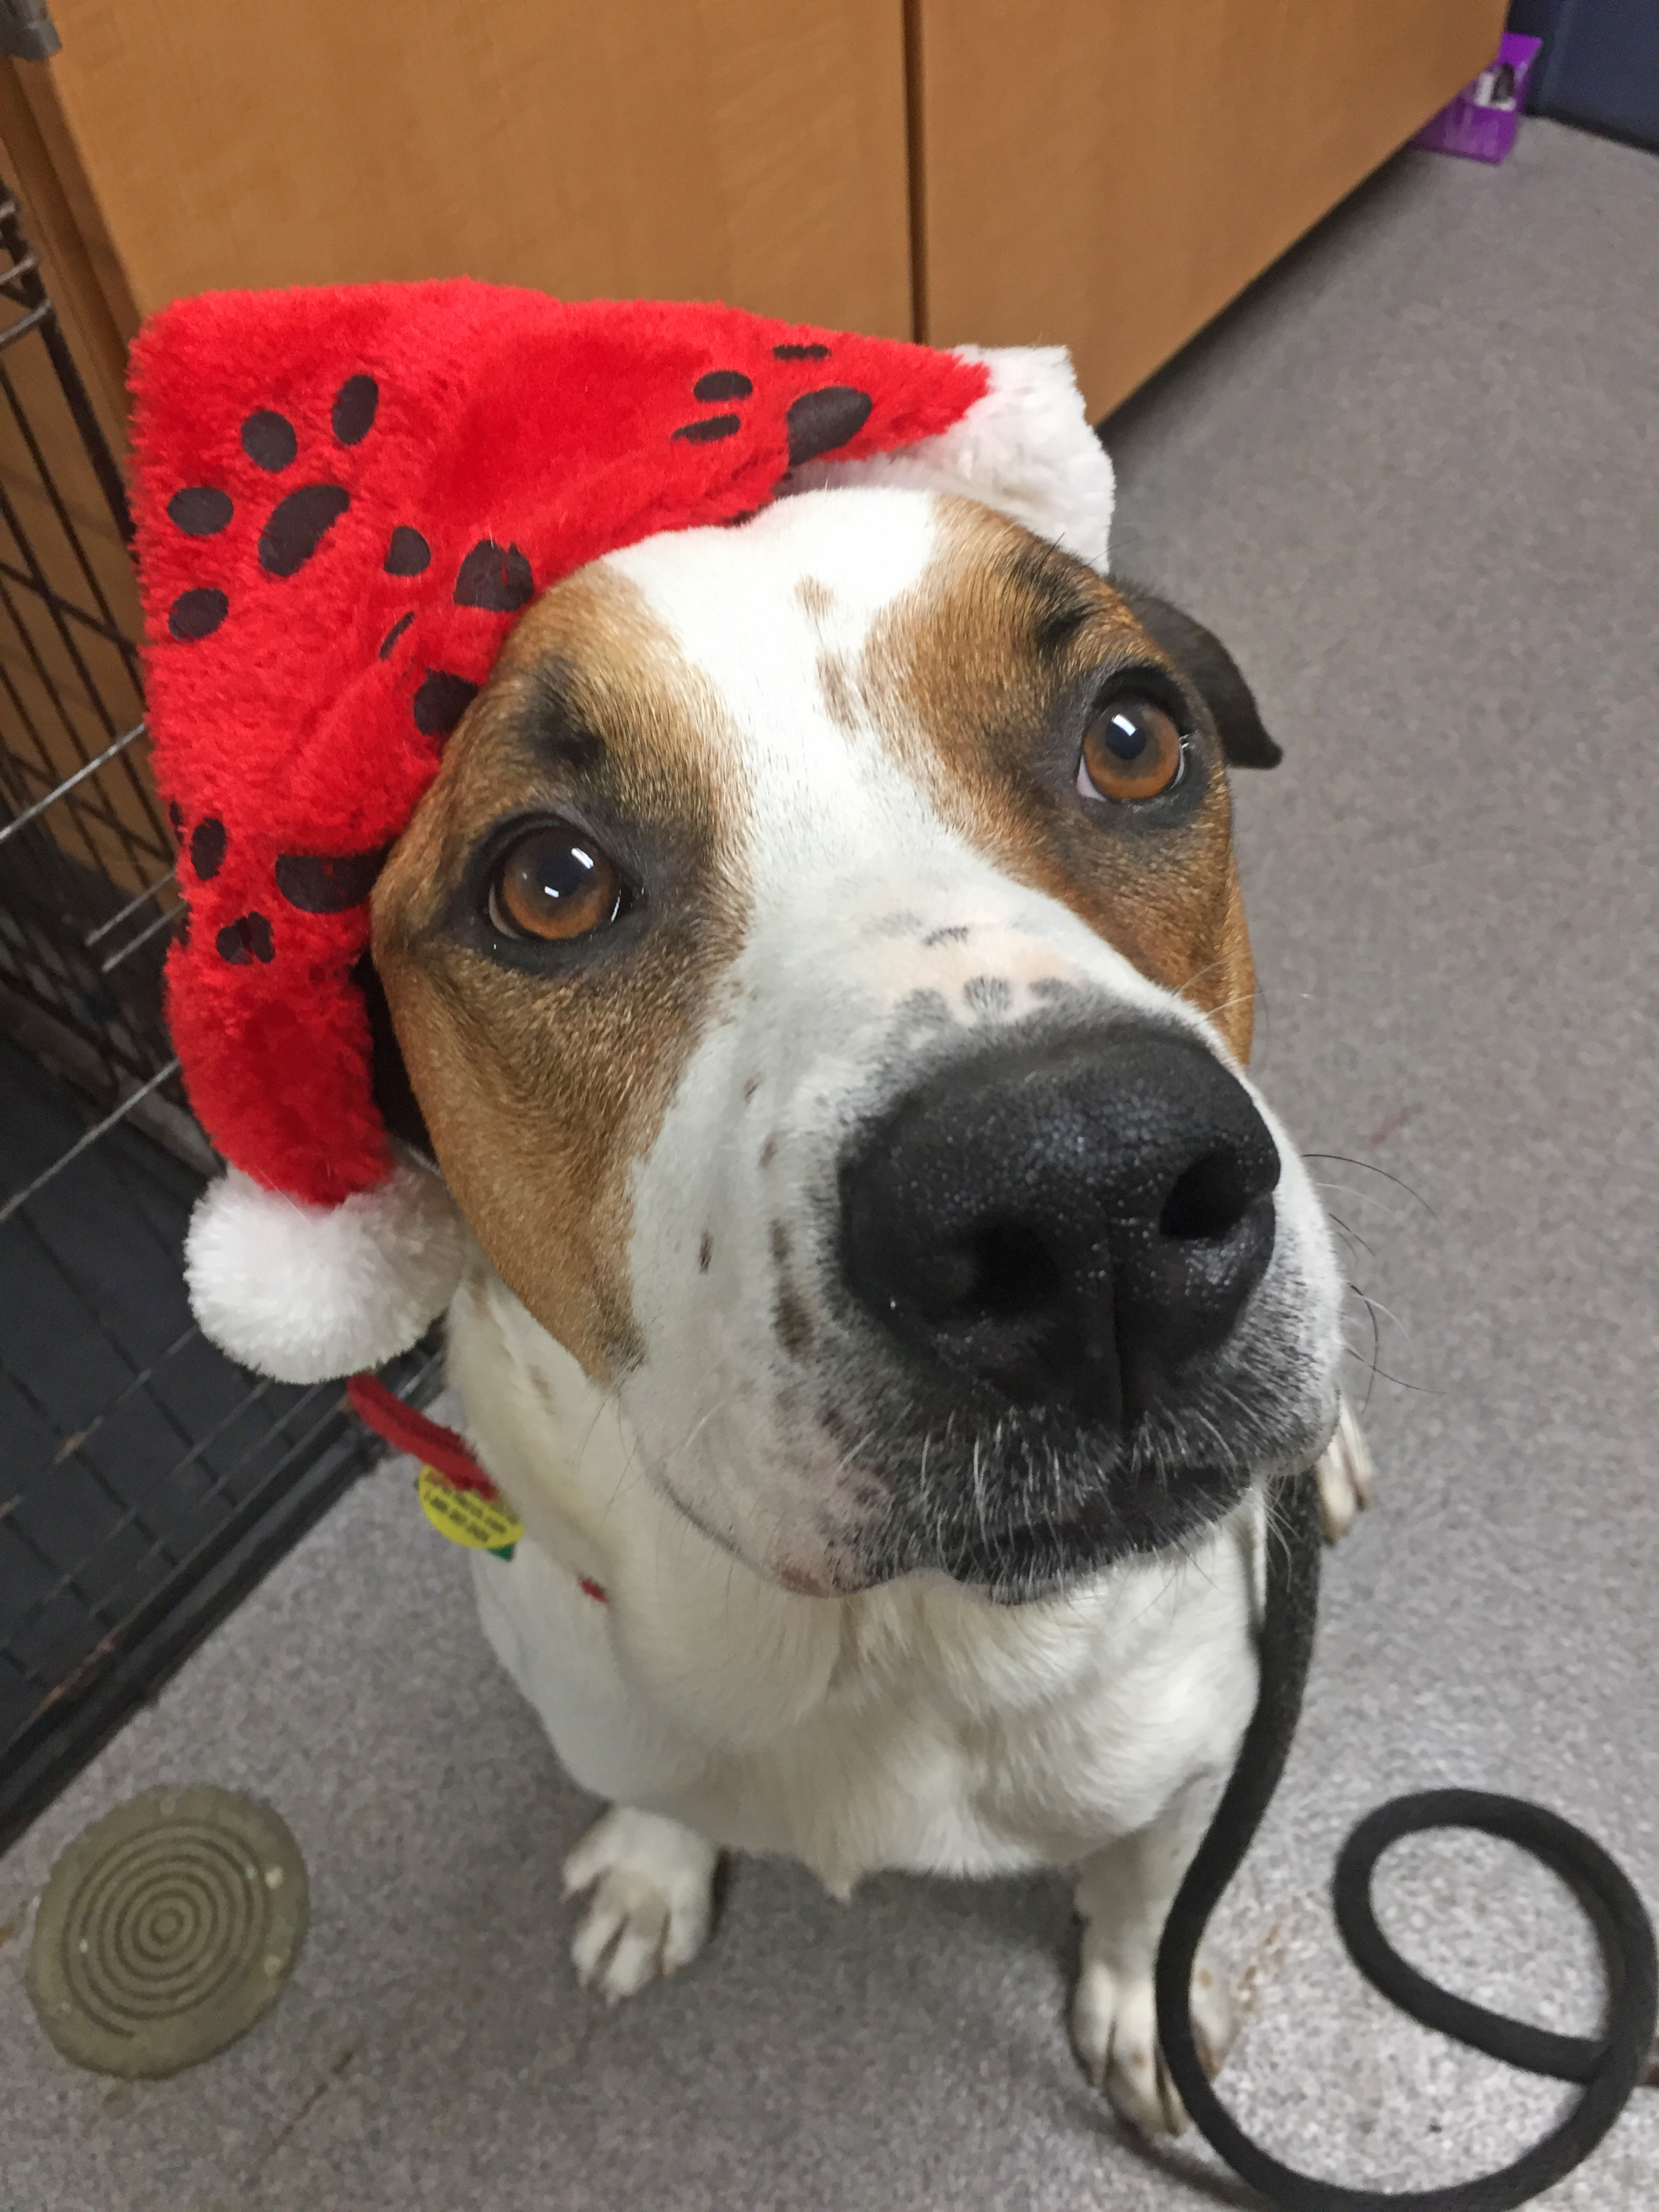 Attached is a picture of Atlas who has been at the Chautauqua County Humane Society since September 28th, 2019. He is a lovable 2 year old looking for a home. The Photo was taken by Brian Papalia.